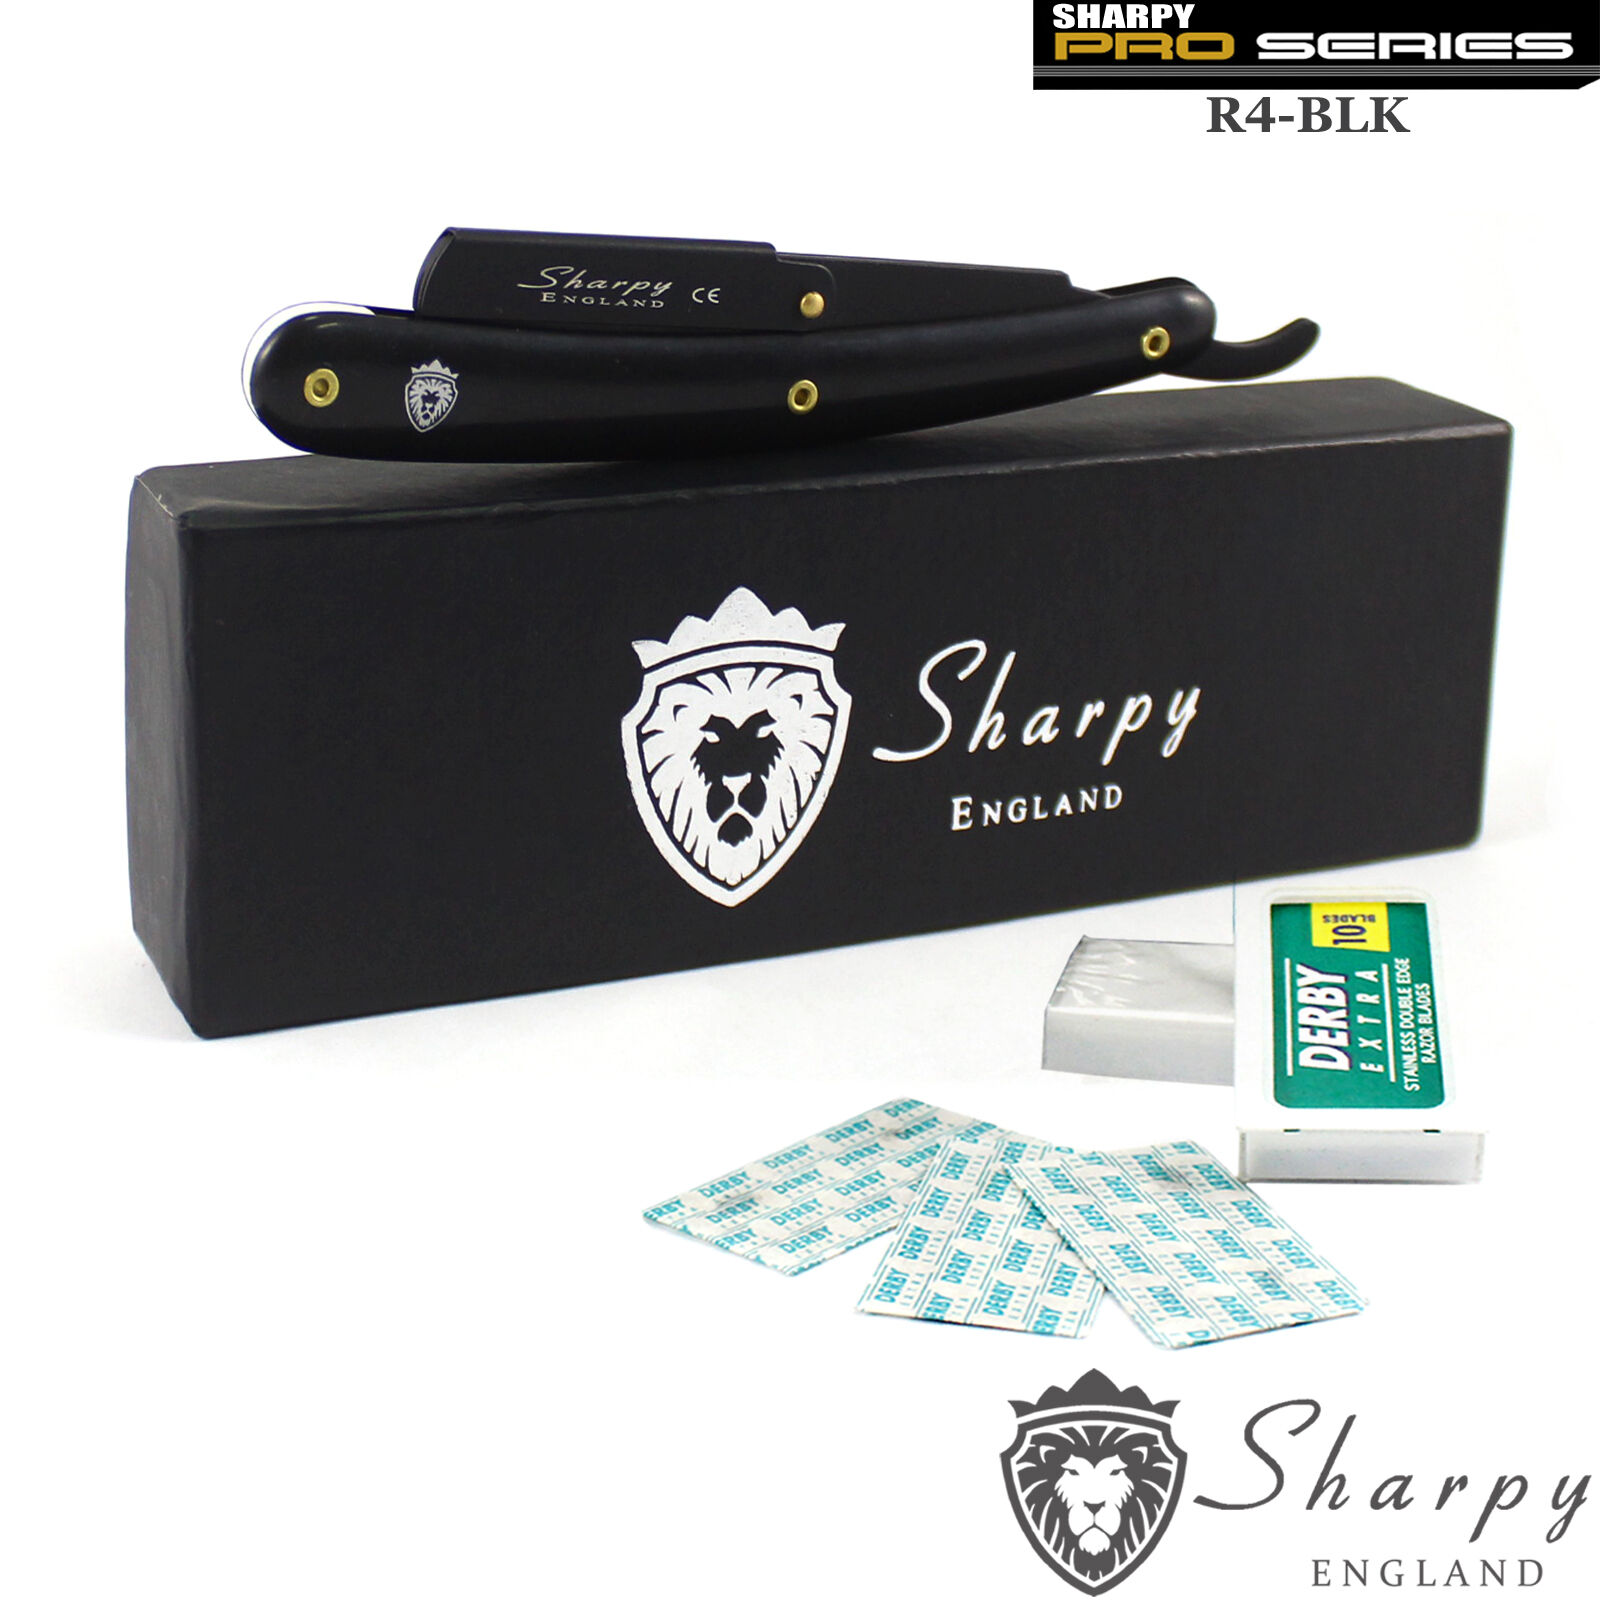 SHARPY BLACK BARBER SALON STRAIGHT CUT THROAT WET SHAVING RAZOR + 10 Free blades